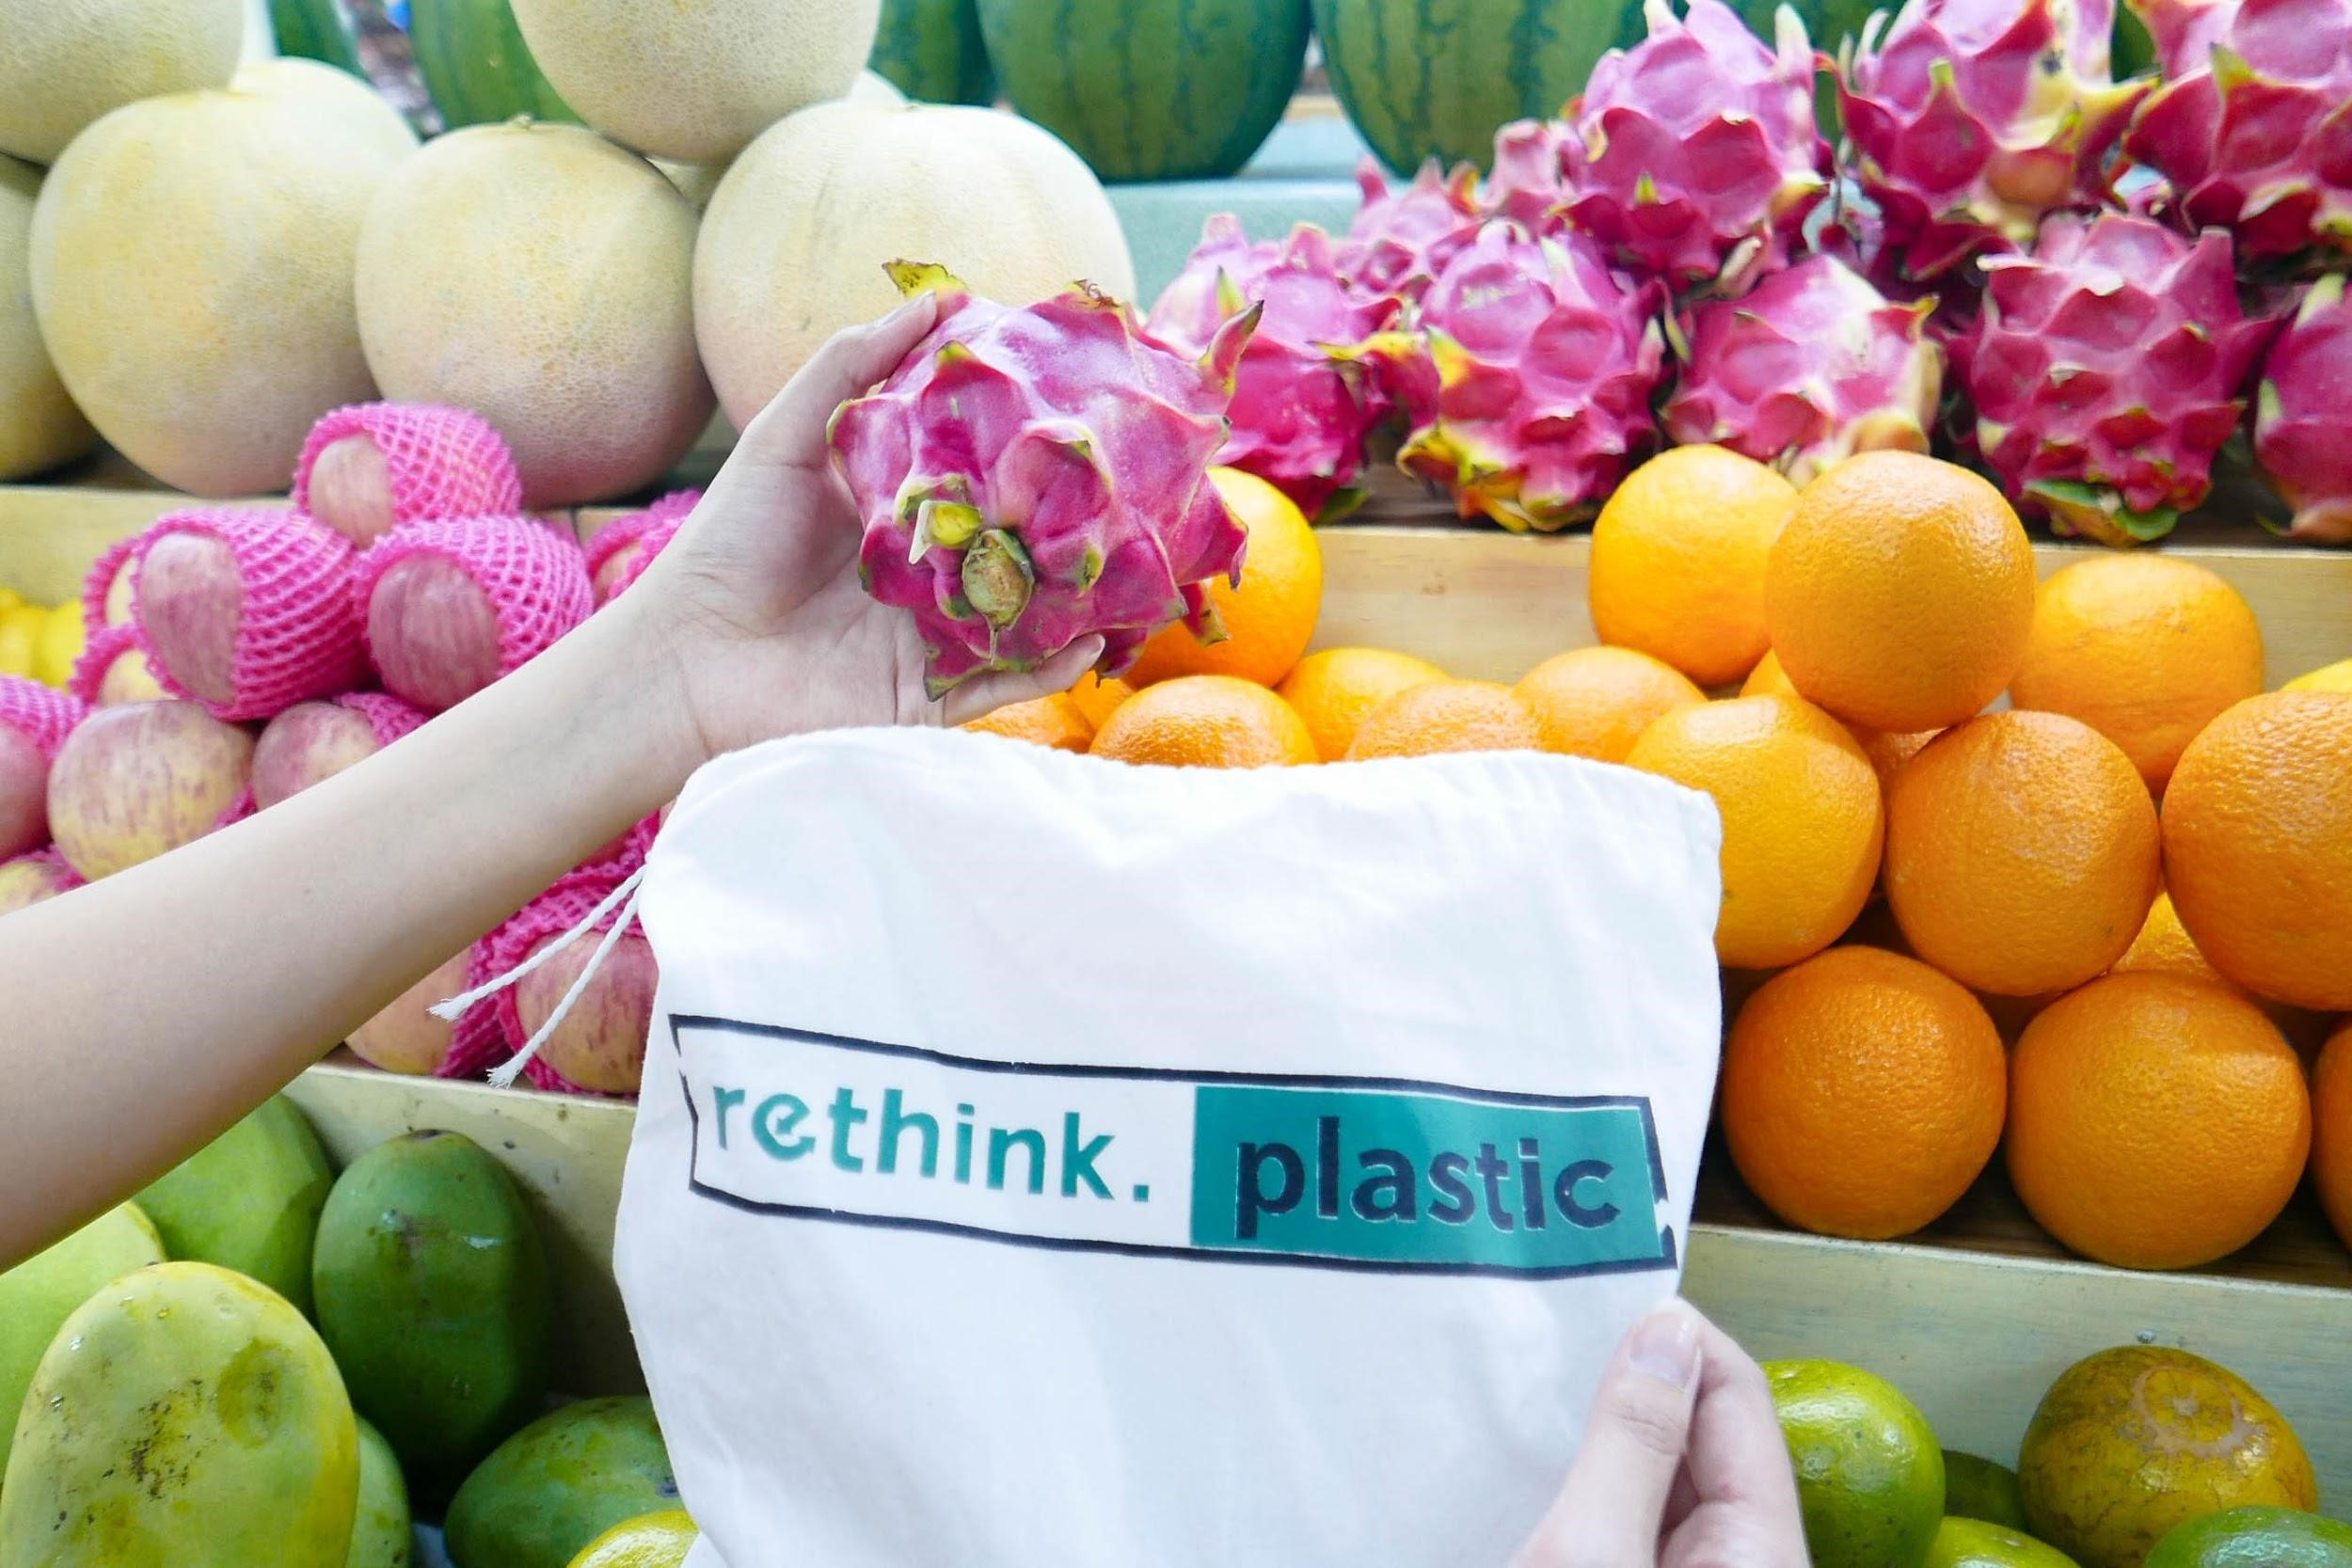 Rethinking the way we consume plastic with Rethink Campaign